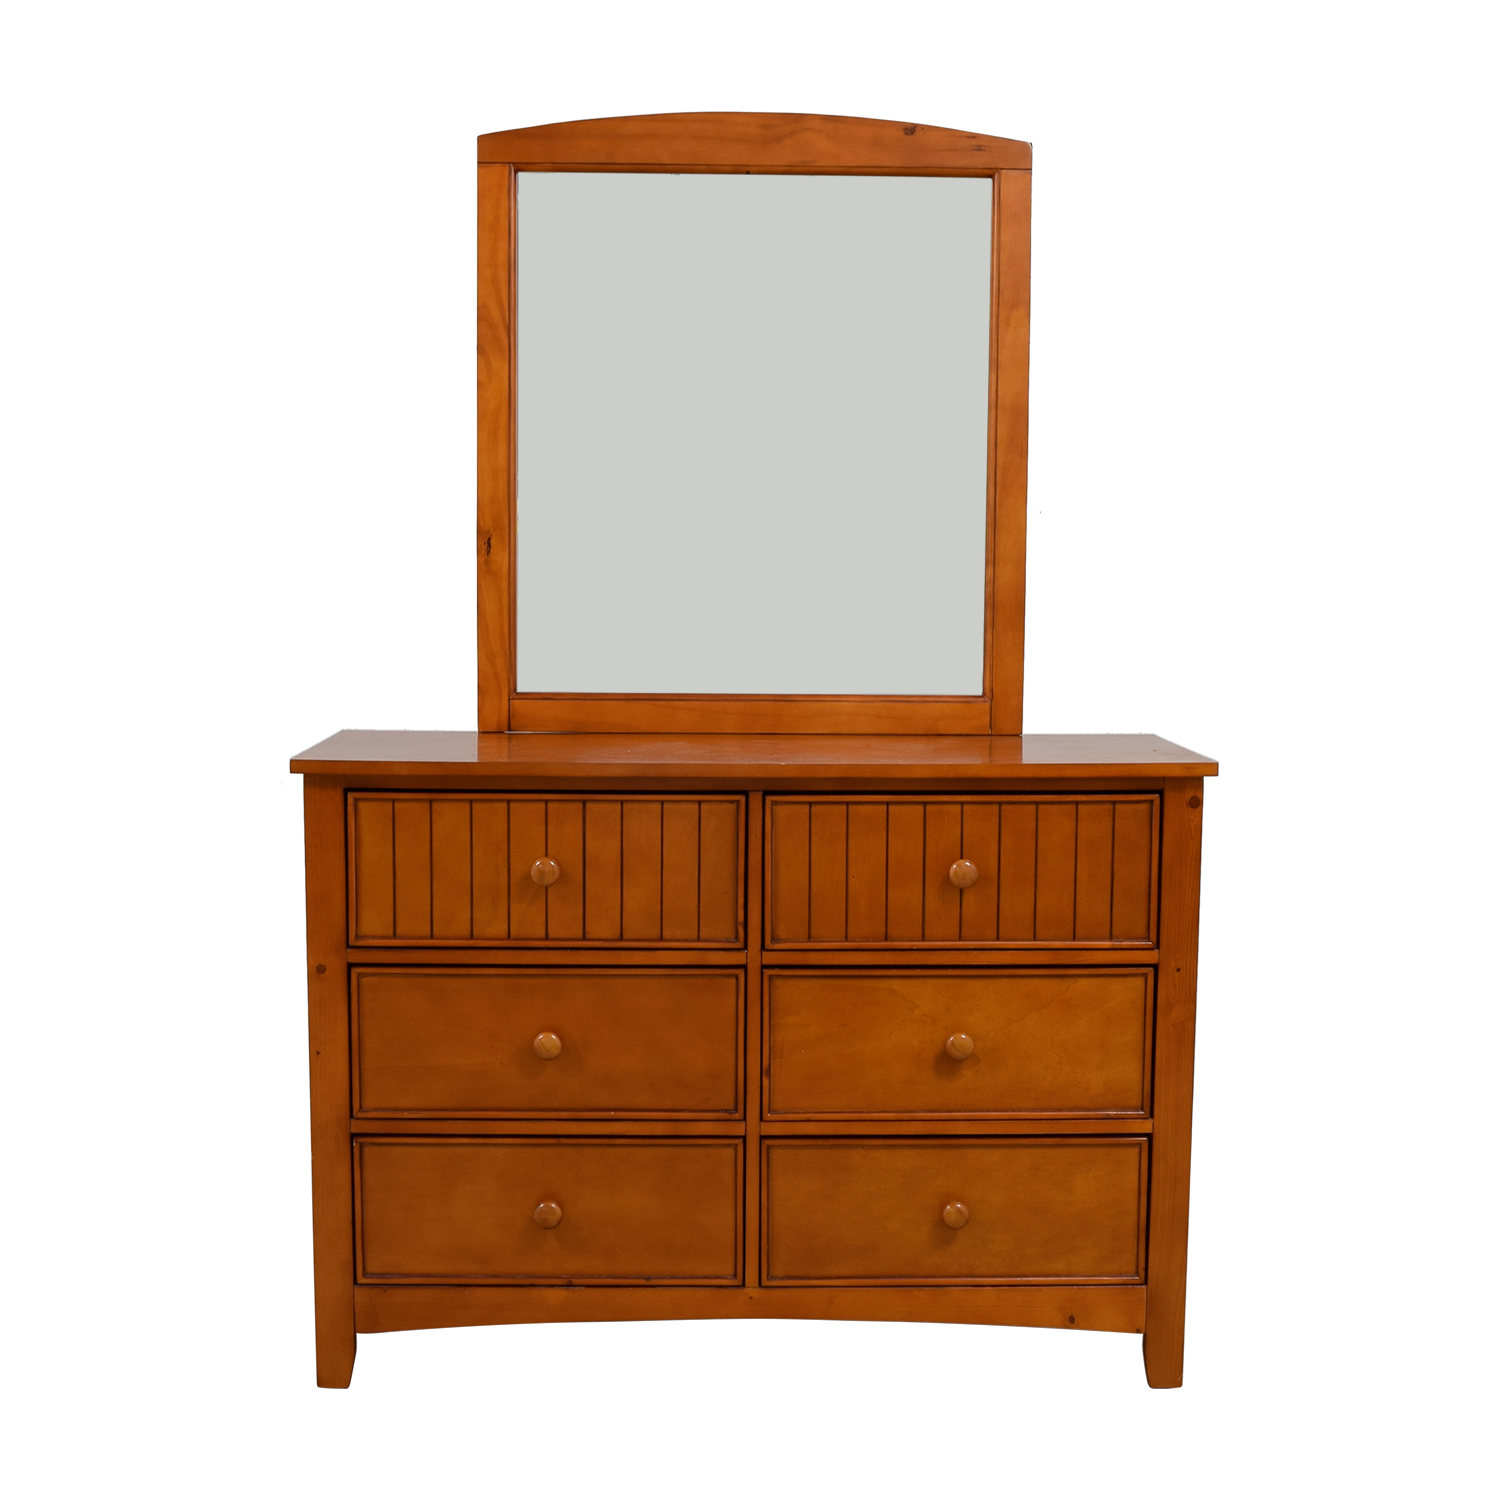 Classic Wooden Dresser with Mirror nj